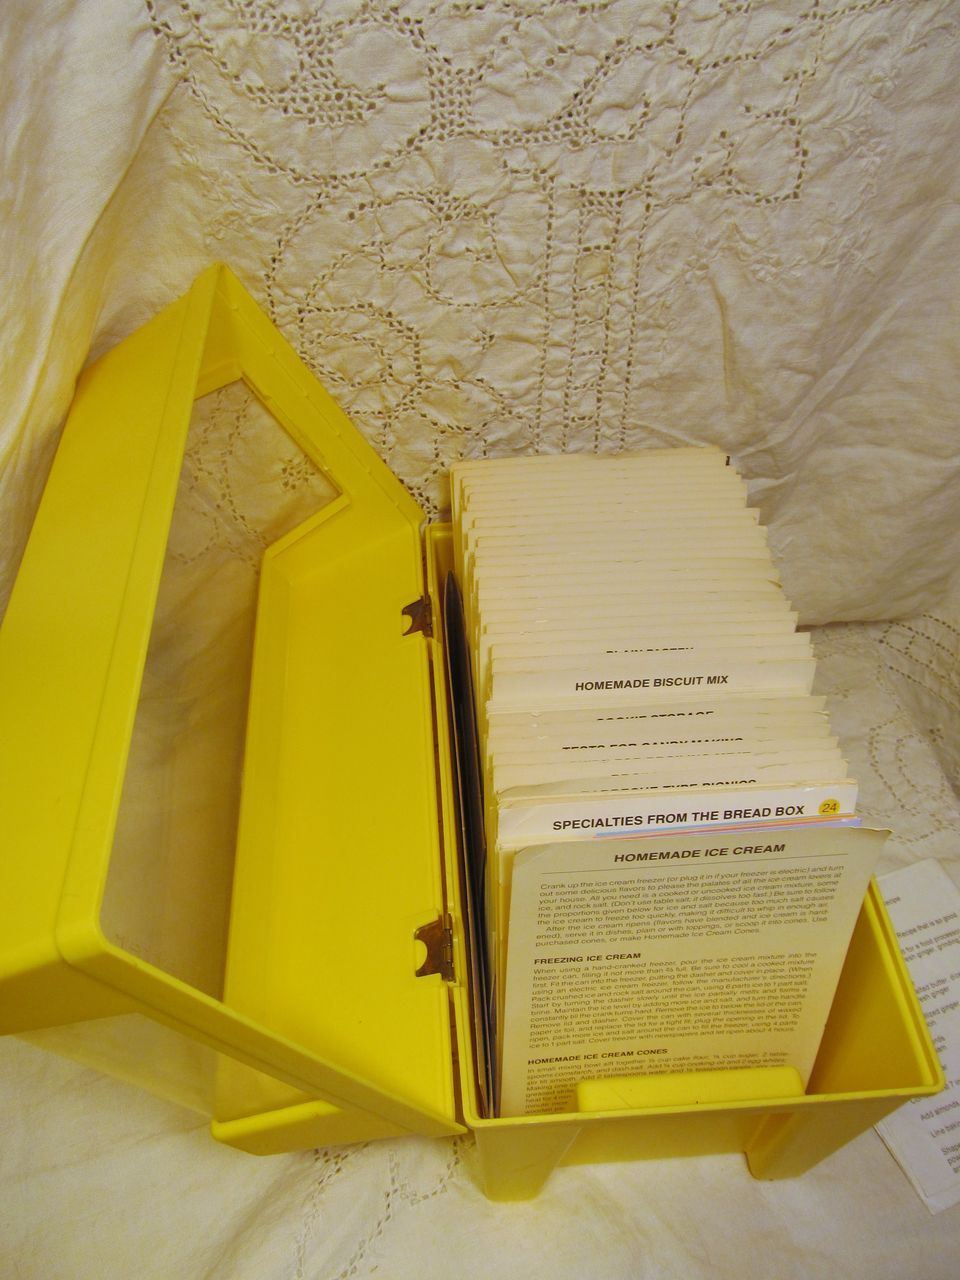 1979 Better Homes Garden Recipe Card Library from prairieland on